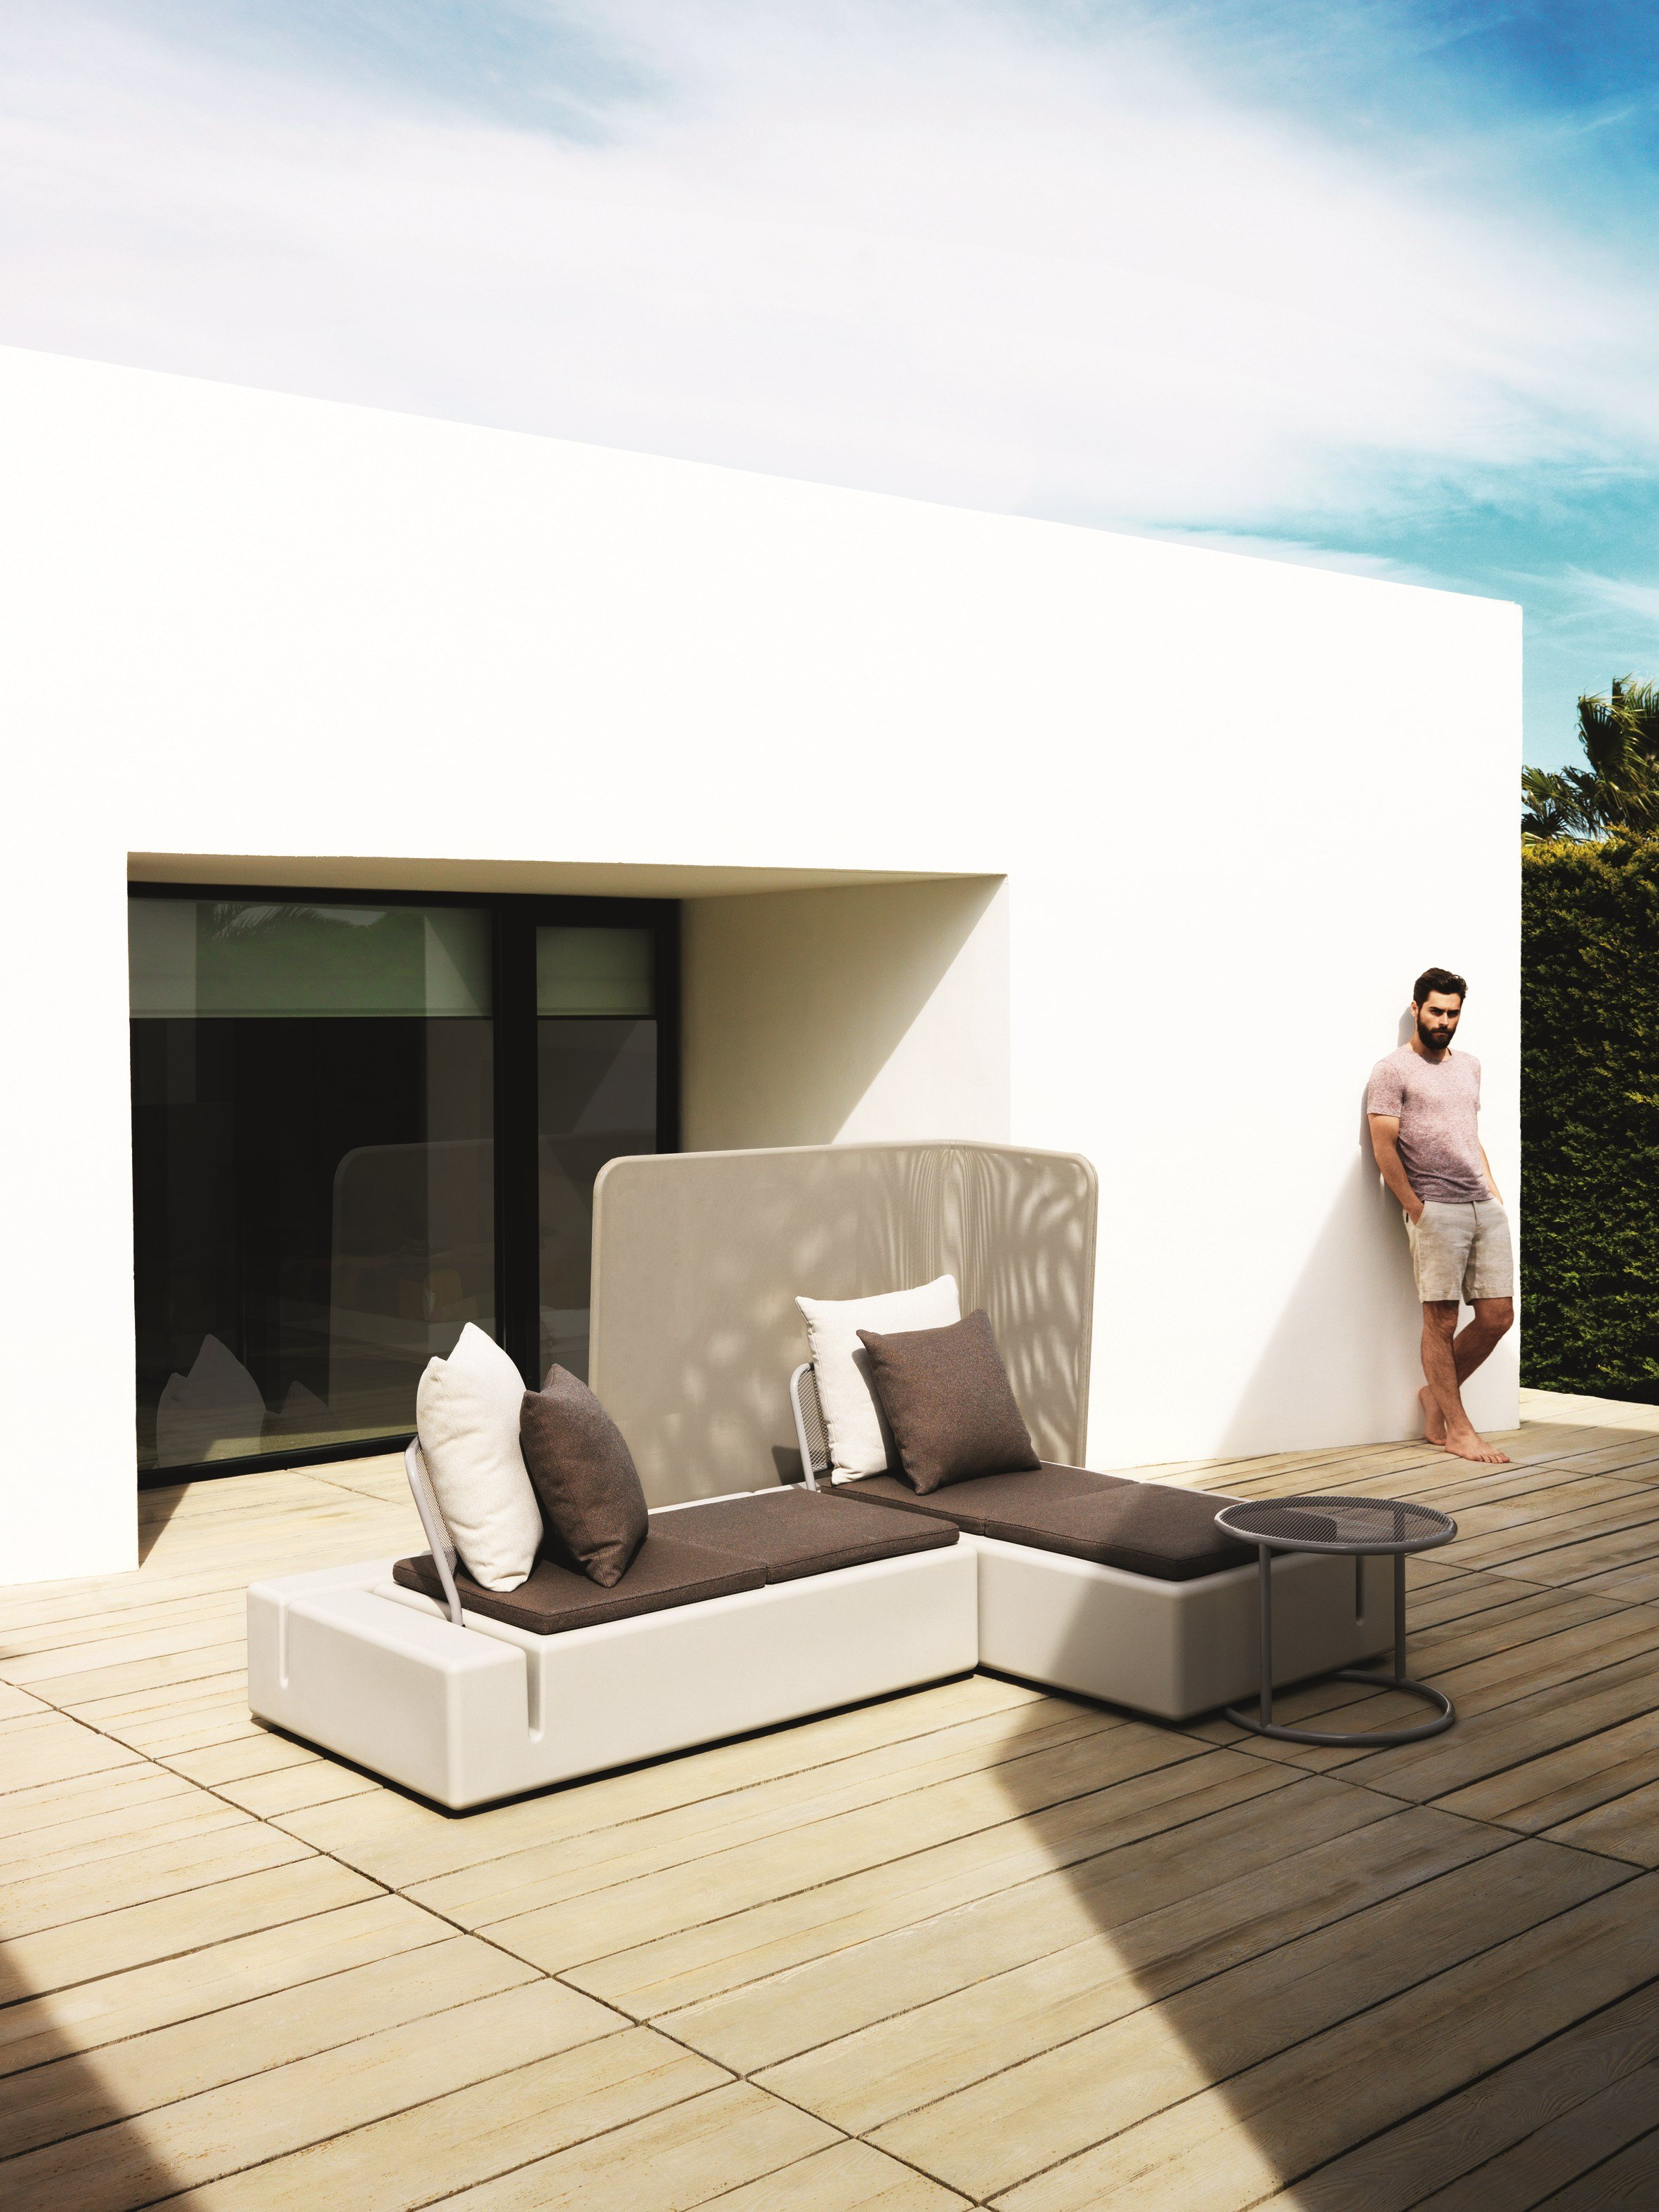 Canap composable de jardin kes by vondom design buratti for Canape composable